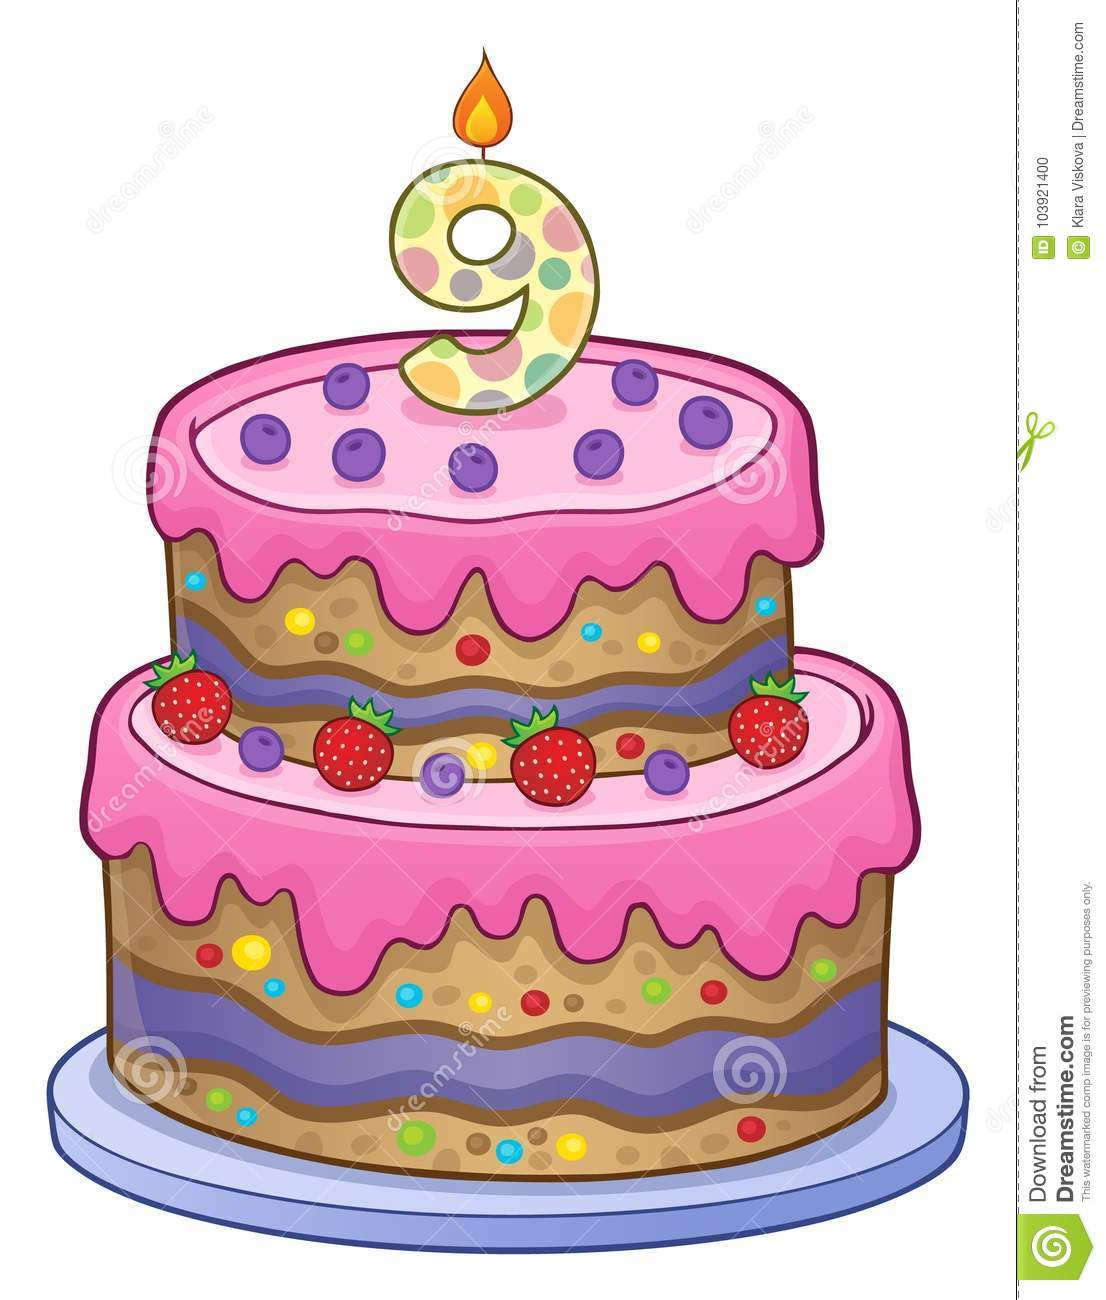 Birthday Cake Image For 9 Years Old Stock Vector Illustration Of